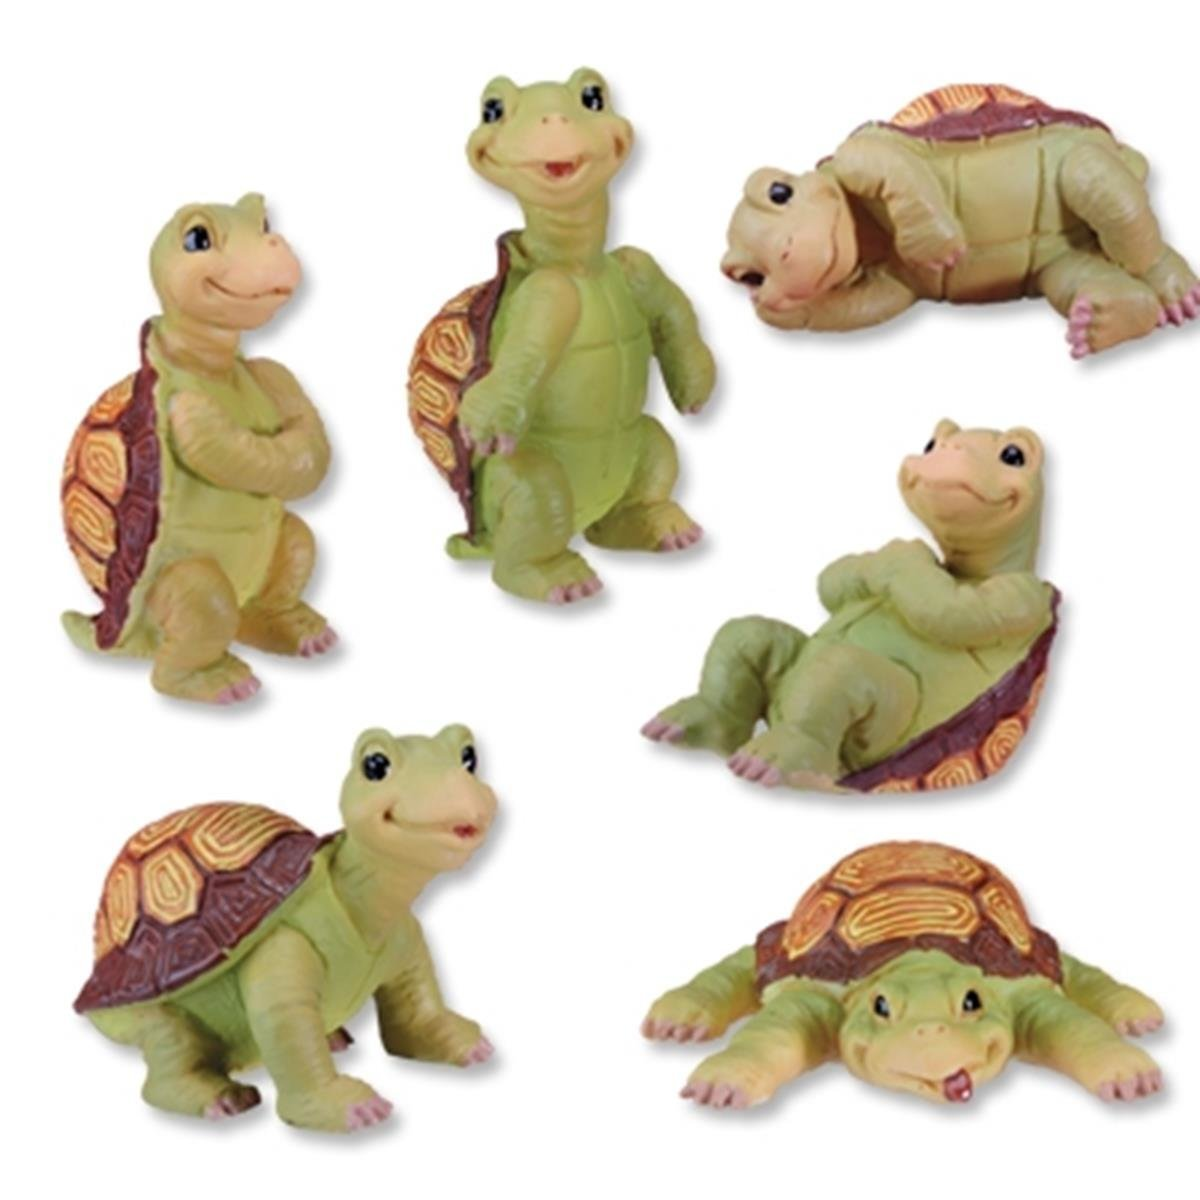 Turtles Collectible Statue, Set of 6